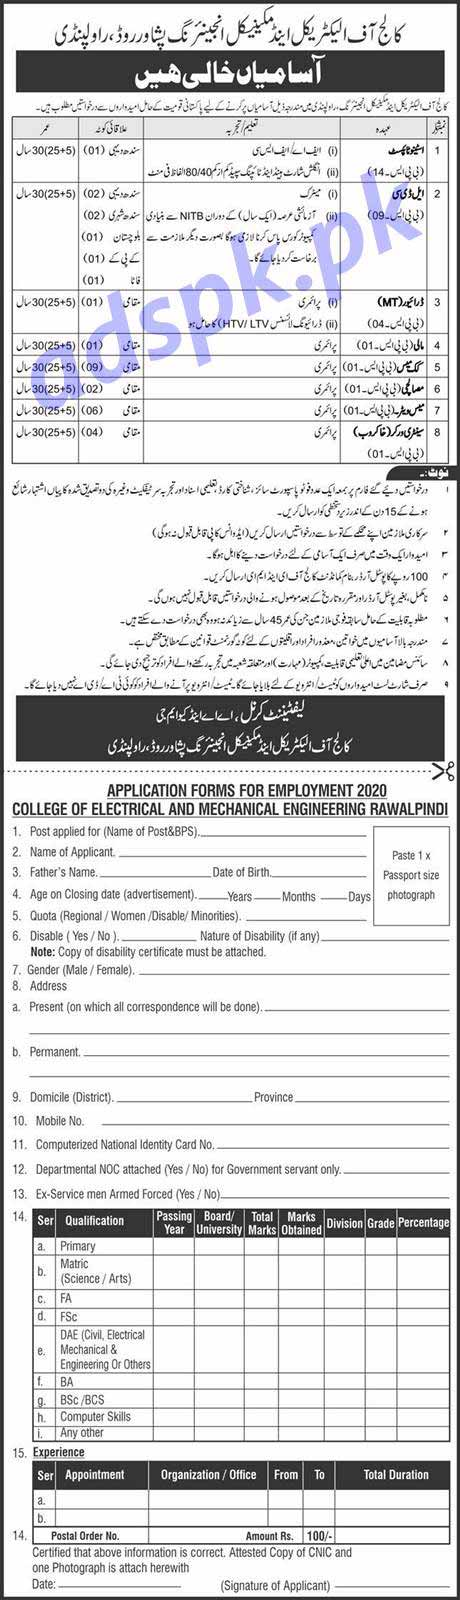 College of Electrical and Mechanical Engineering Rawalpindi Jobs 2020 for Steno Typist LDC Driver MT Mali Cook Mess Jobs Application Form Deadline 04-05-2020 Apply Now